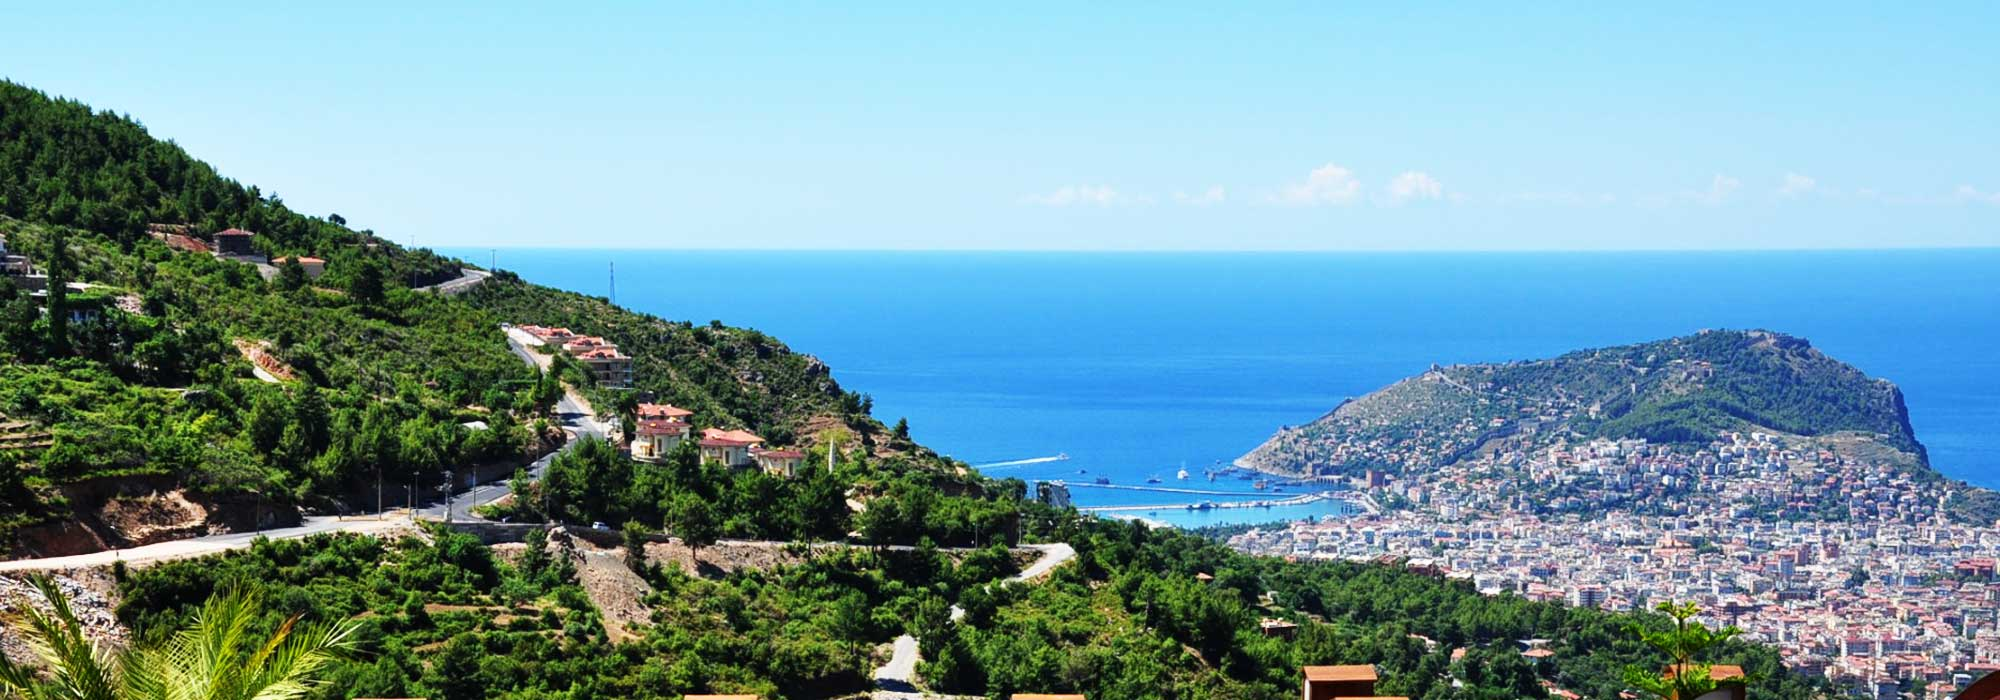 159 000 Euro New Private Villa Home til salgs i Alanya Tepe Bektas